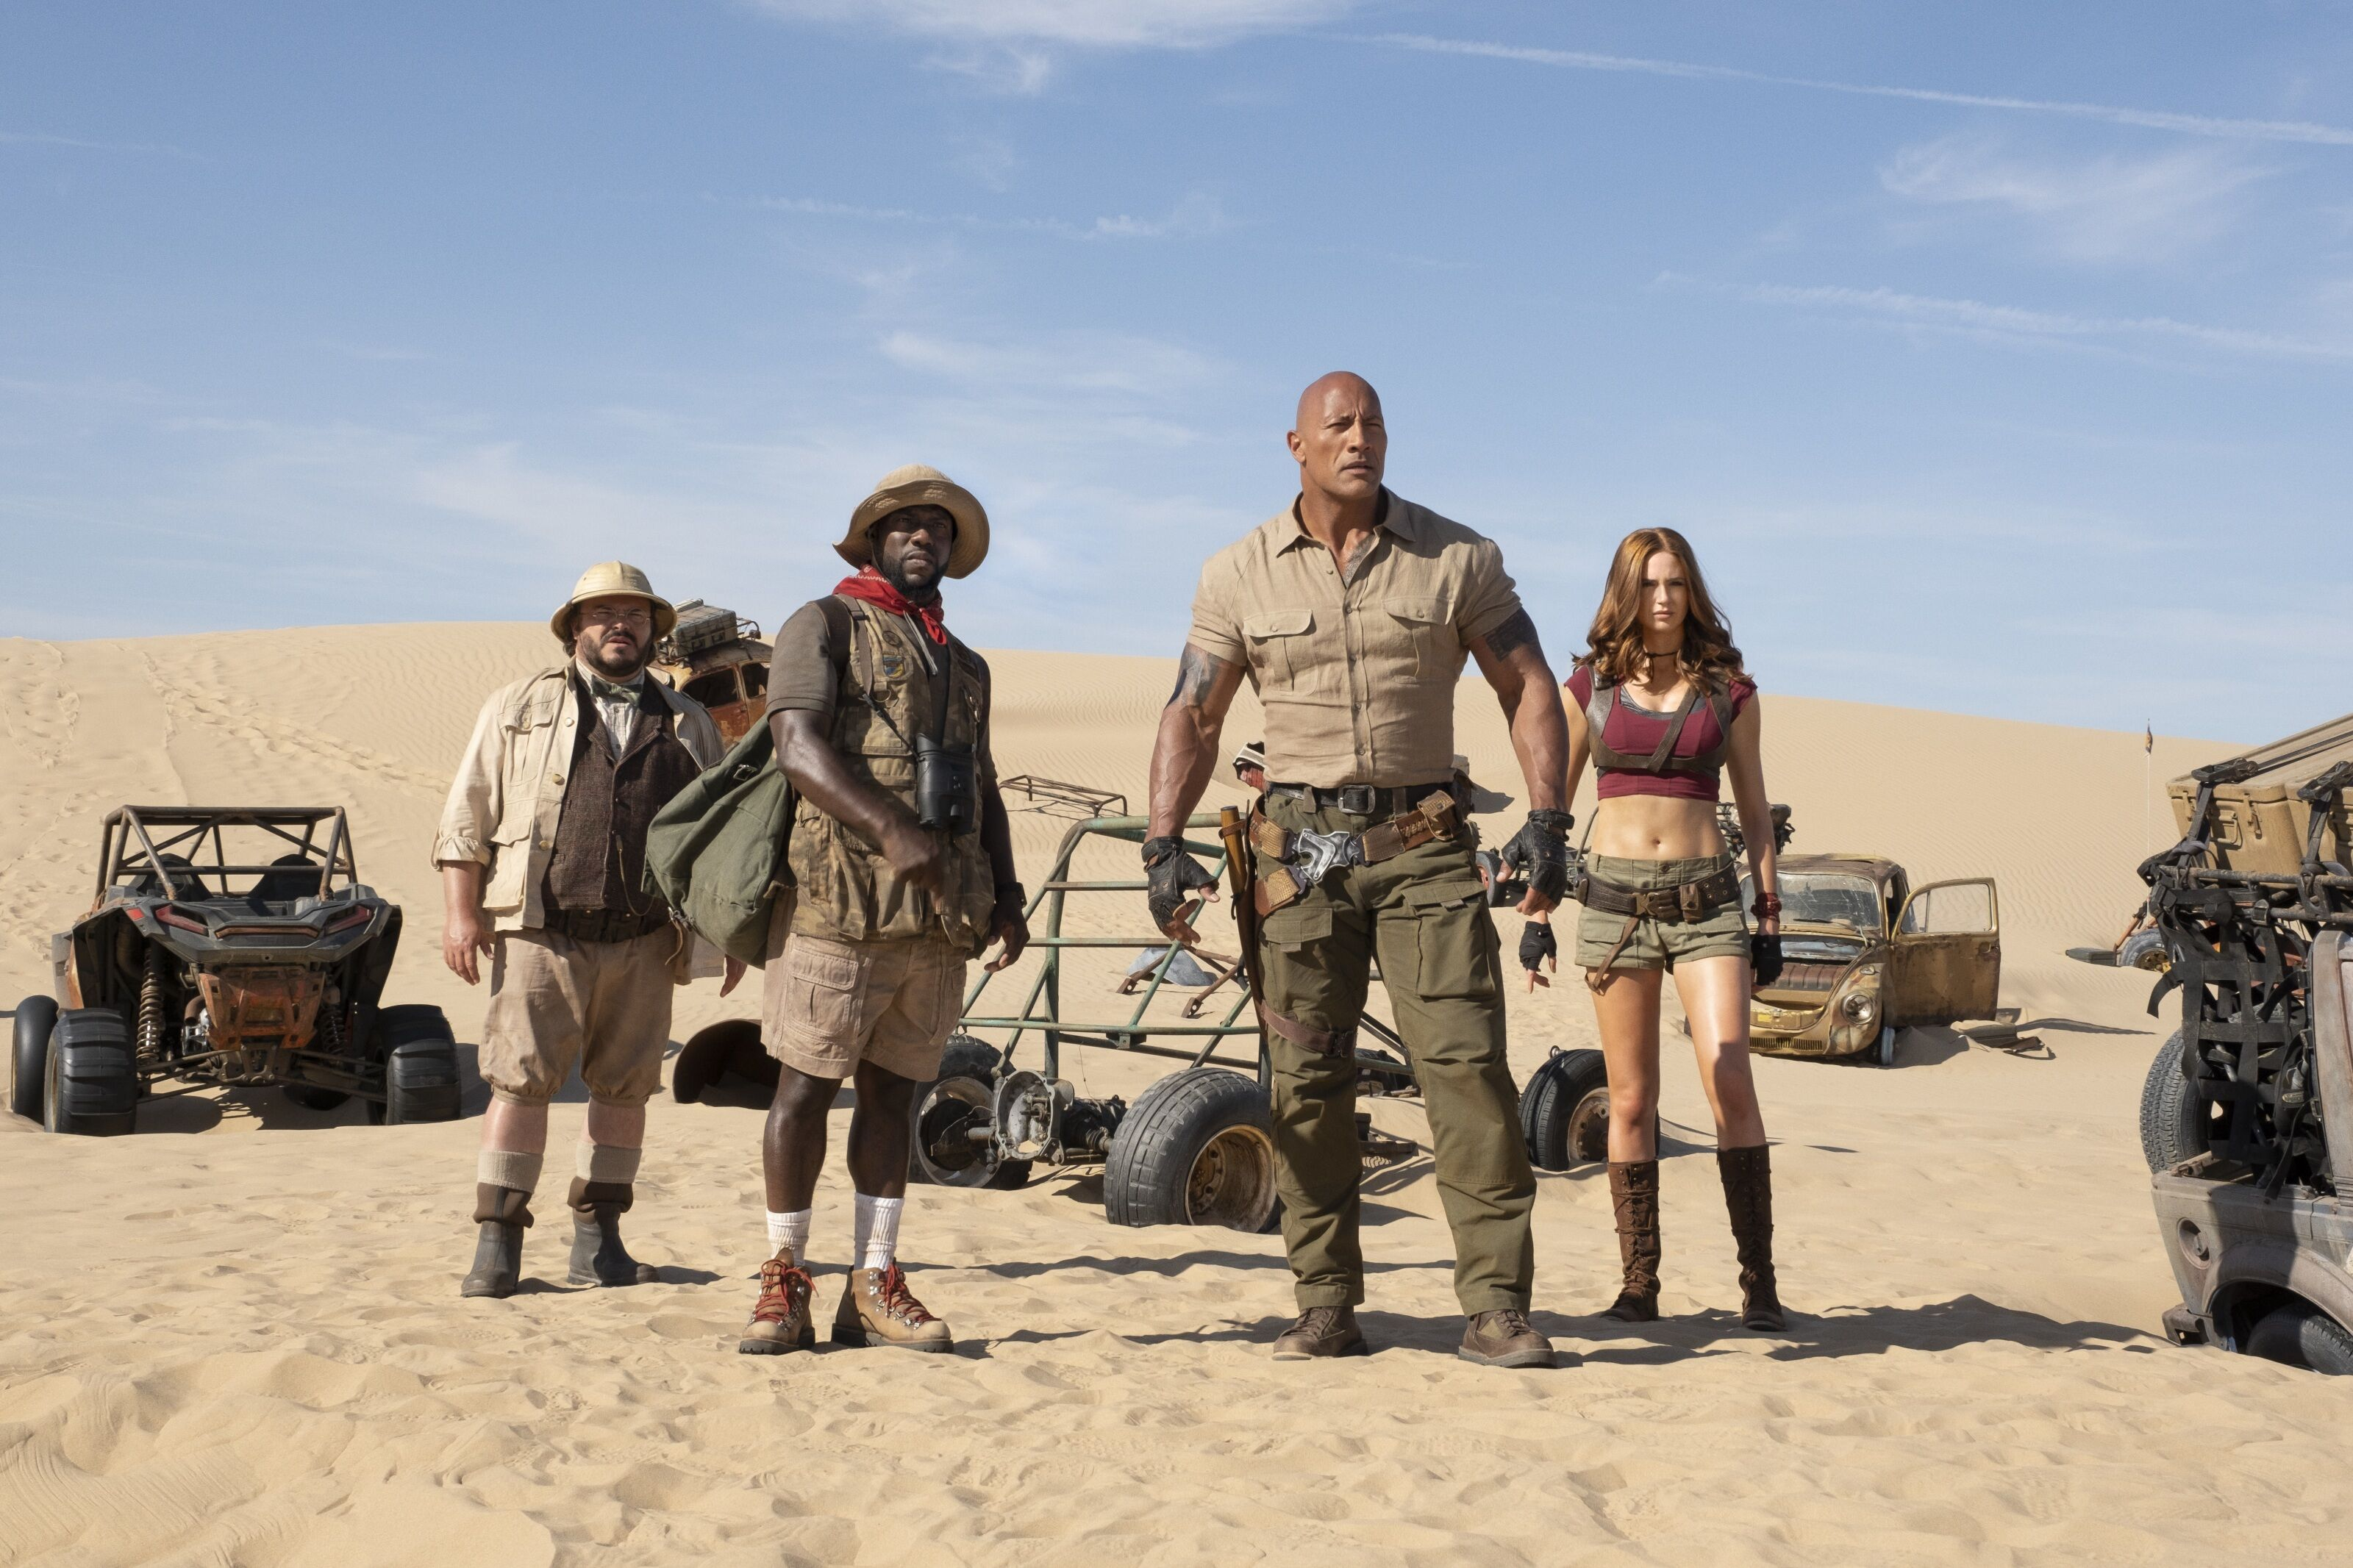 Review: Jumanji: The Next Level's cast makes it a worthy sequel